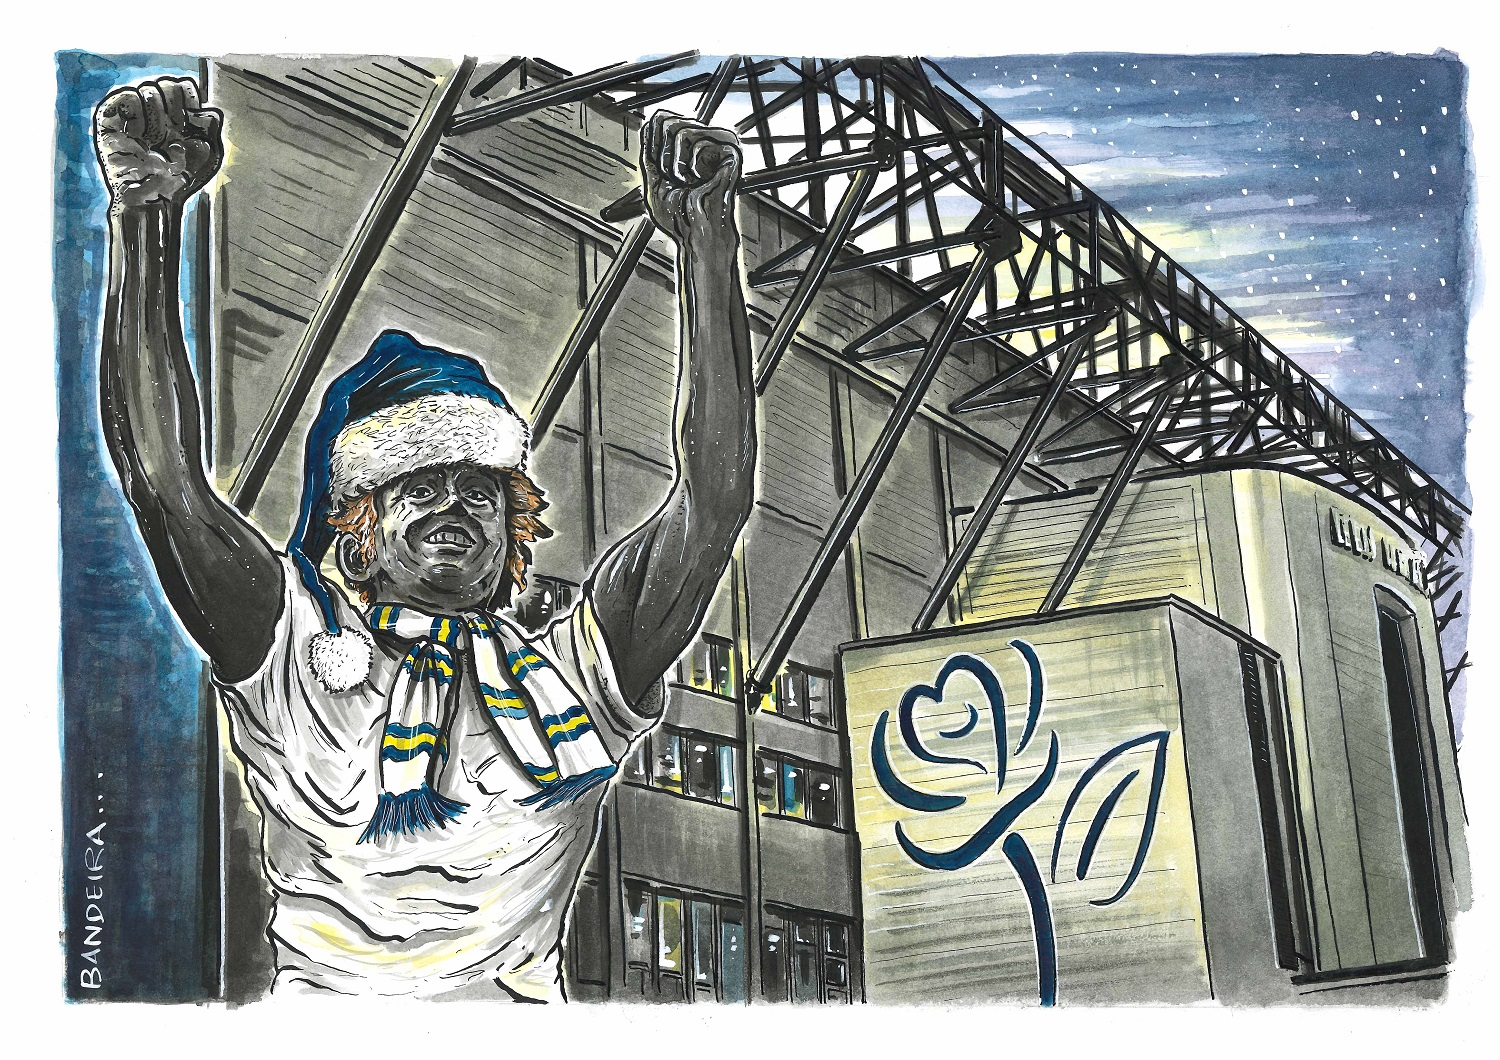 Limited edition Christmas card, designed by Yorkshire Post illustrator Graeme Bandeira